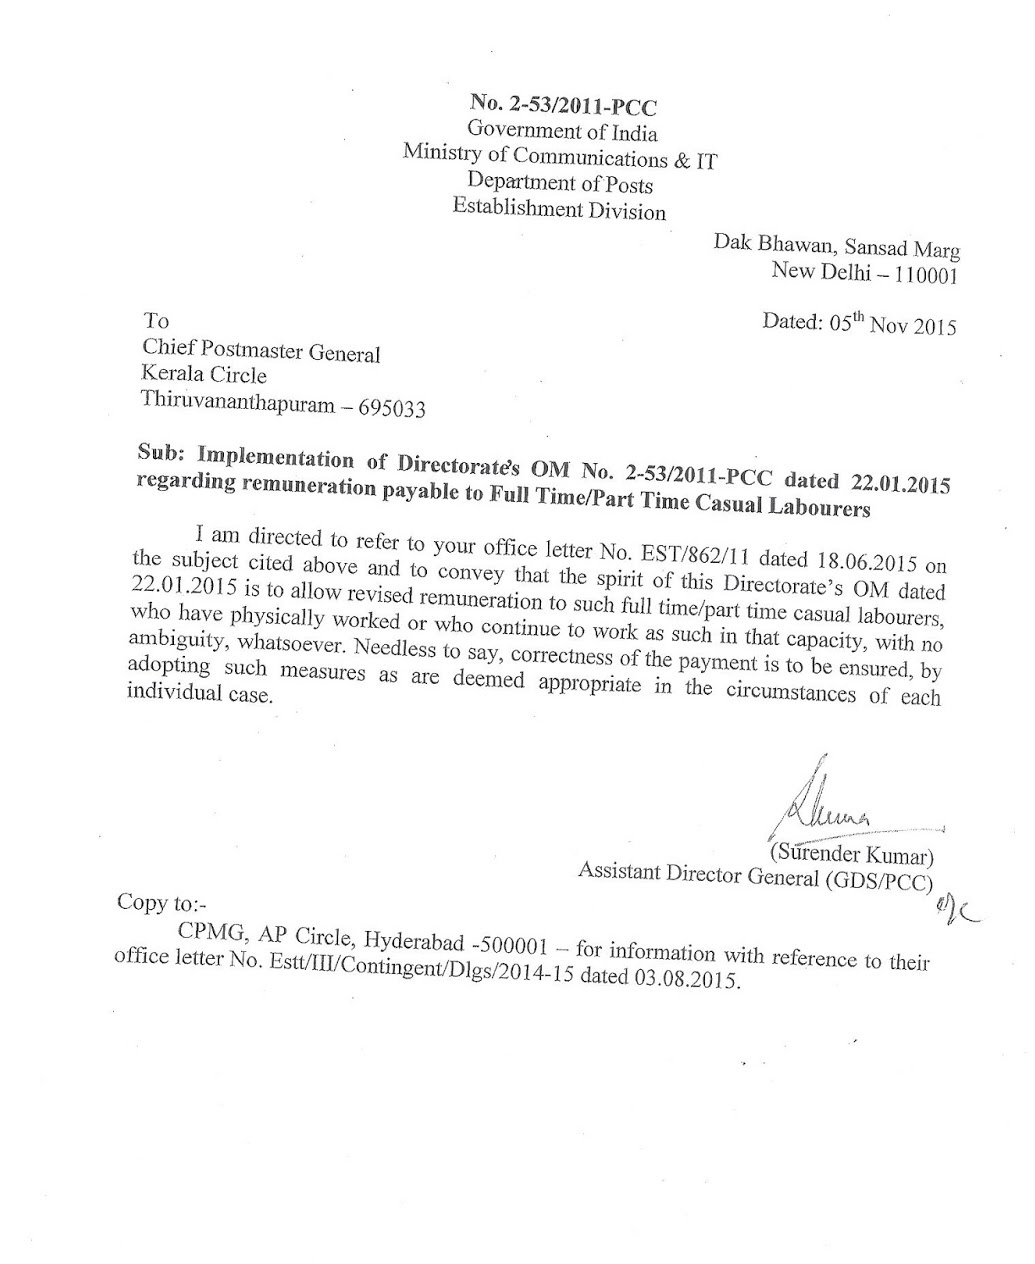 ip a sp andhra payment of revised remuneration to full part postal directortae has issued clarification vide letter no 2 53 2011 pcc dated 05 11 2015 which is reproduced below